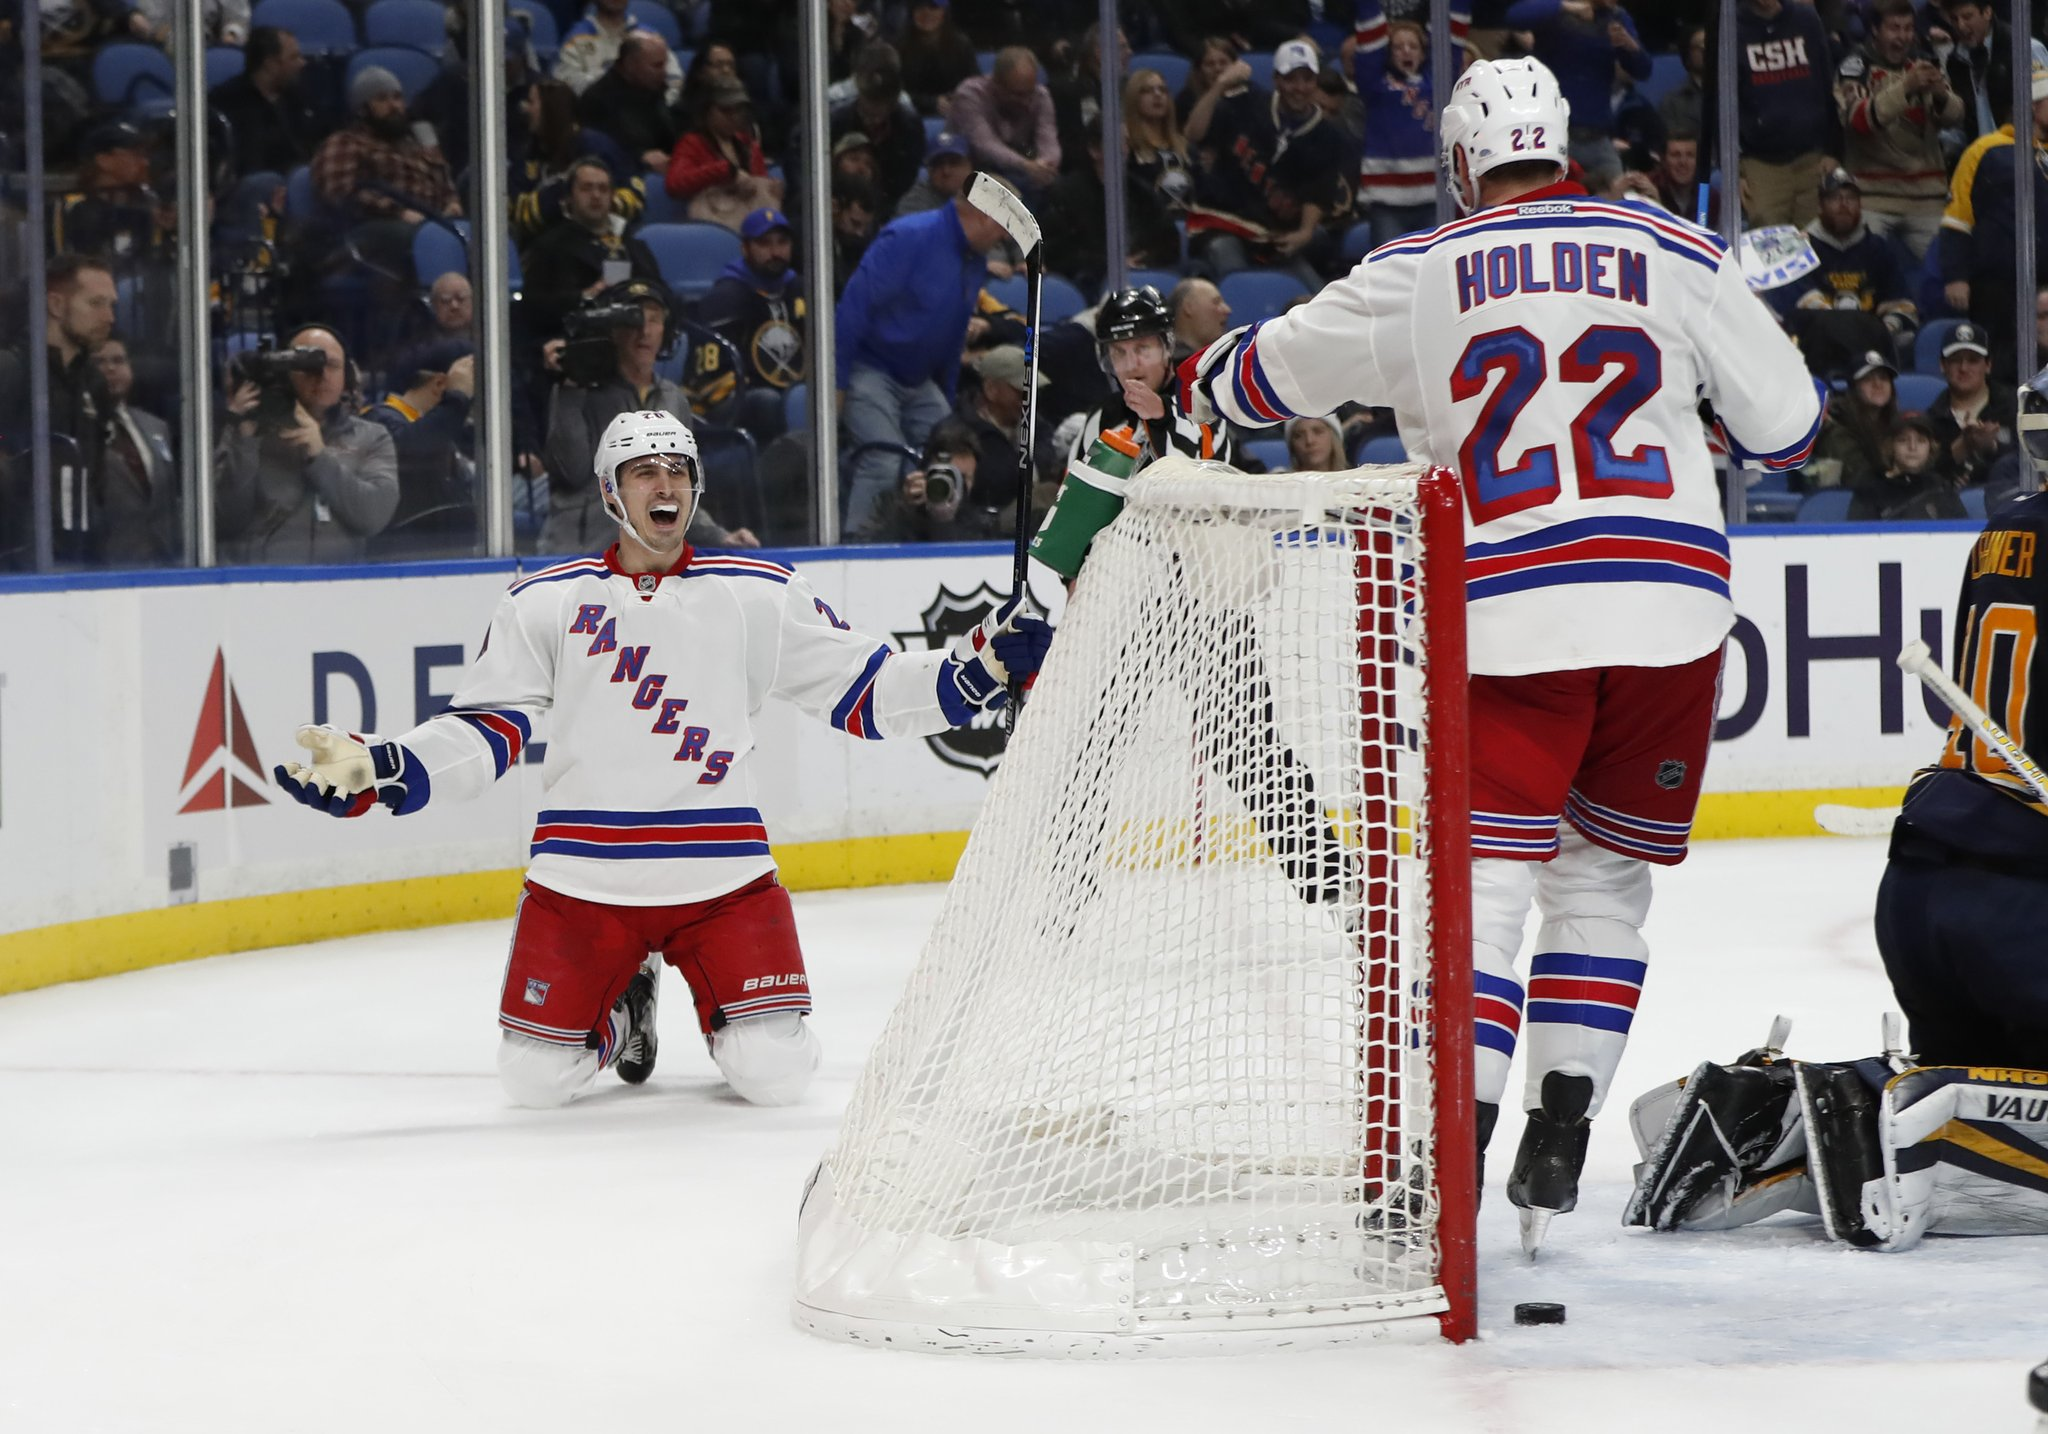 Chris Kreider celebrates his overtime winner with Rangers teammate Nick Holden. (Harry Scull Jr./Buffalo News)